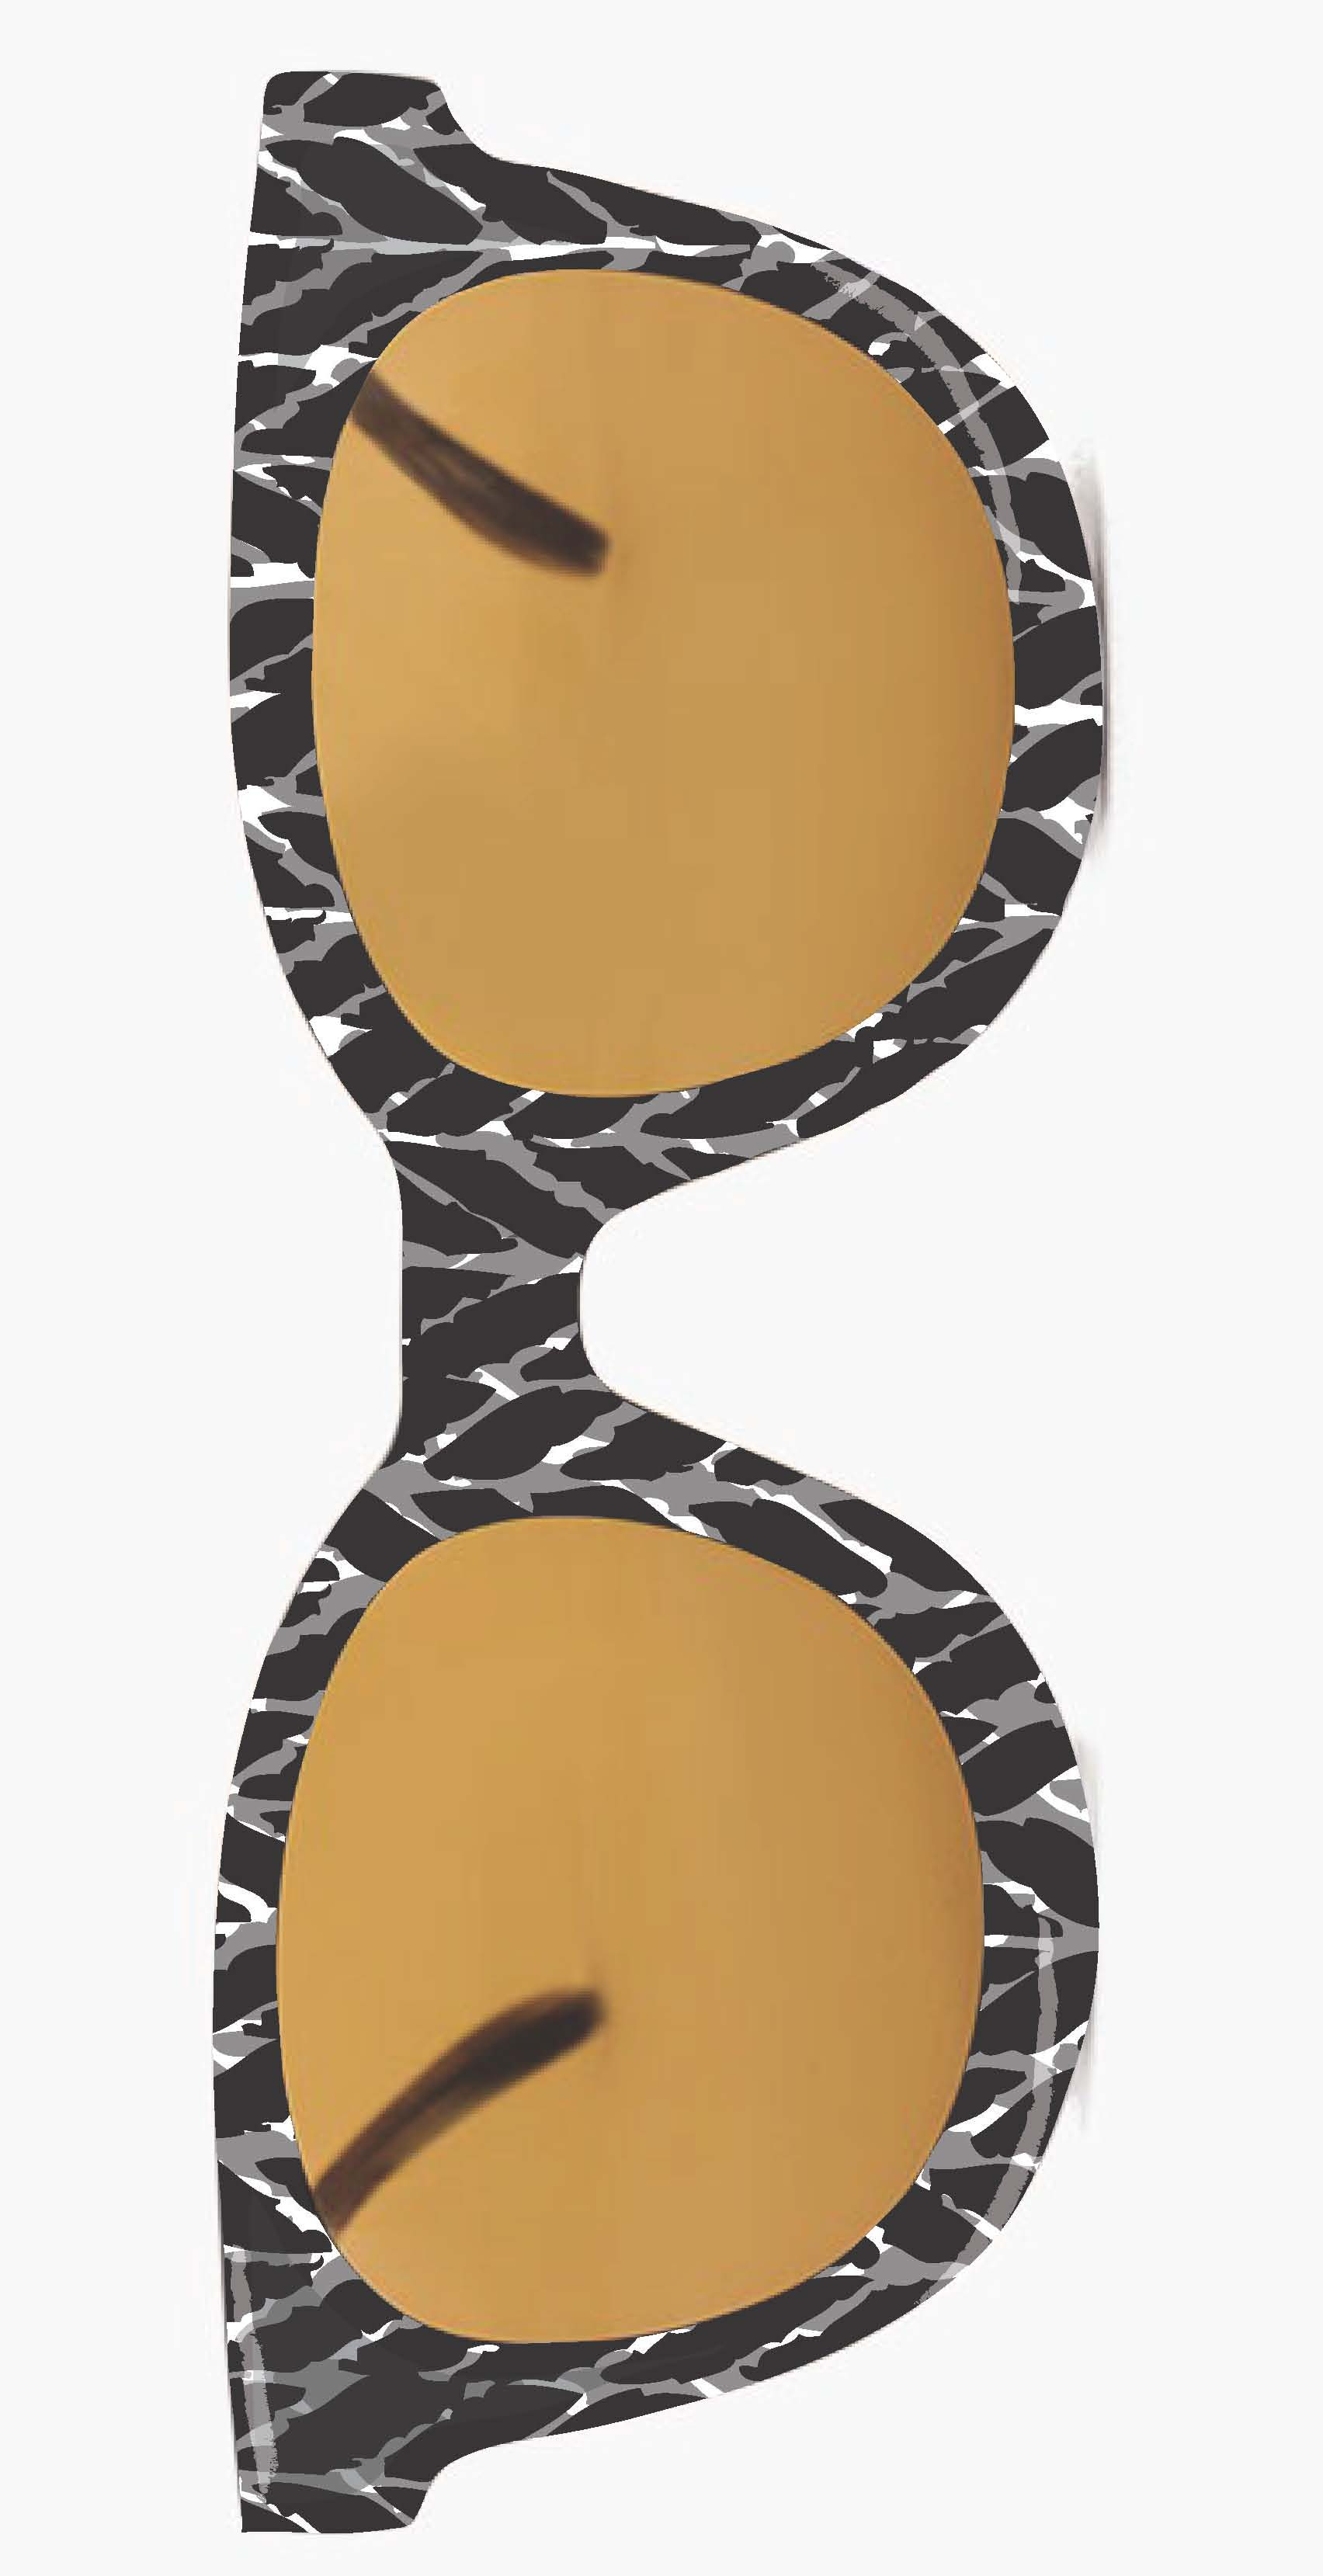 BMD www sunglasses.jpg